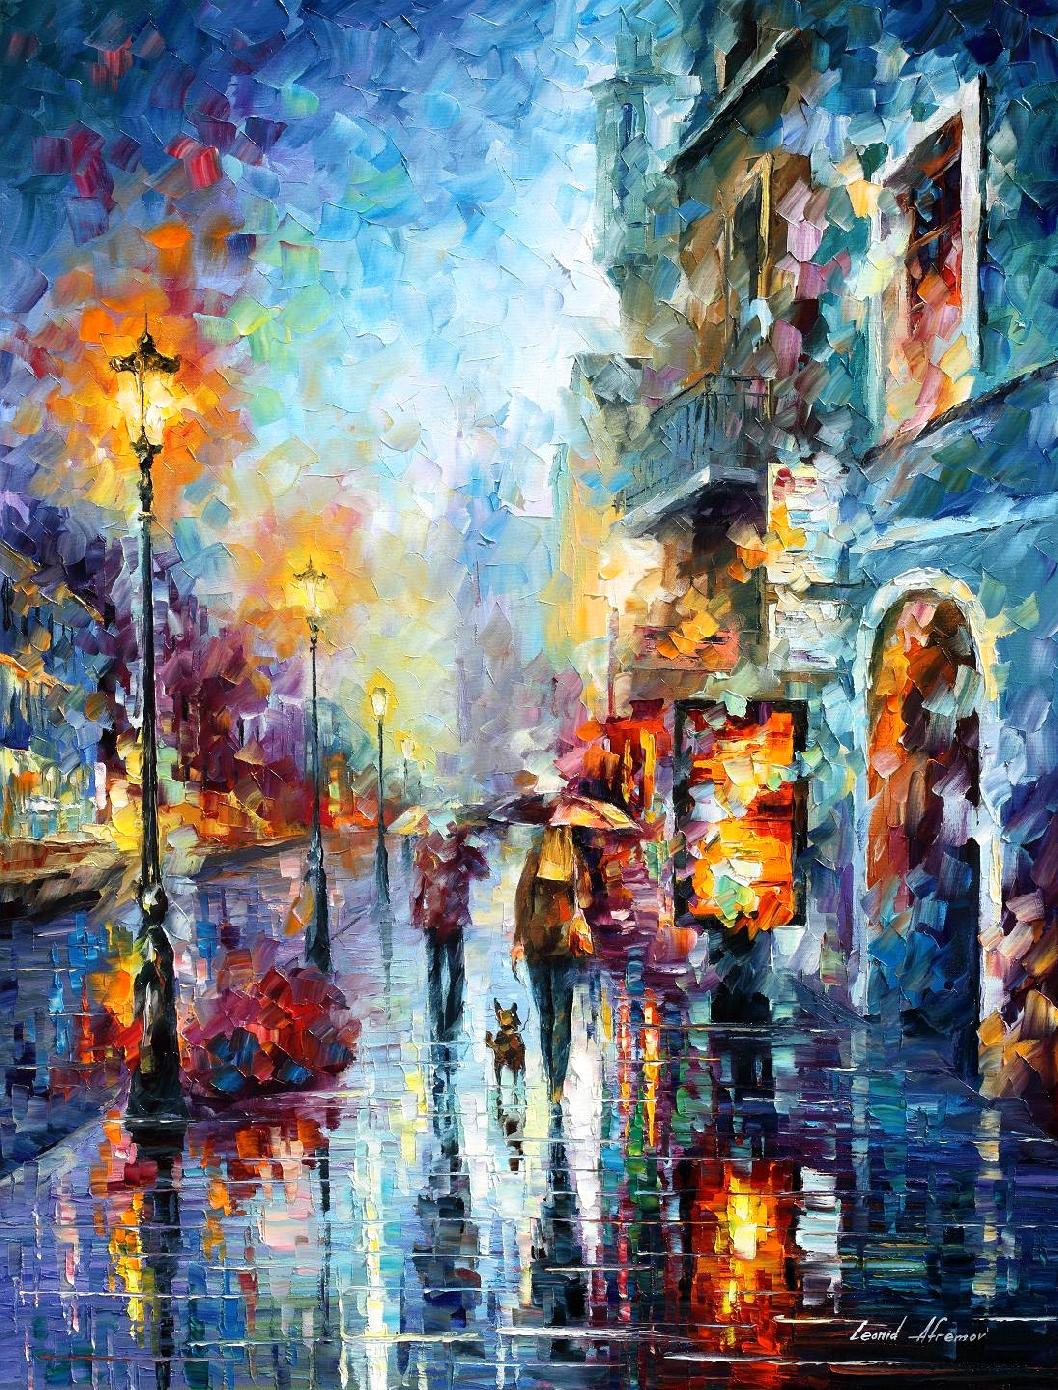 Abstract Wall Art By Famous Painter Leonid Afremov For